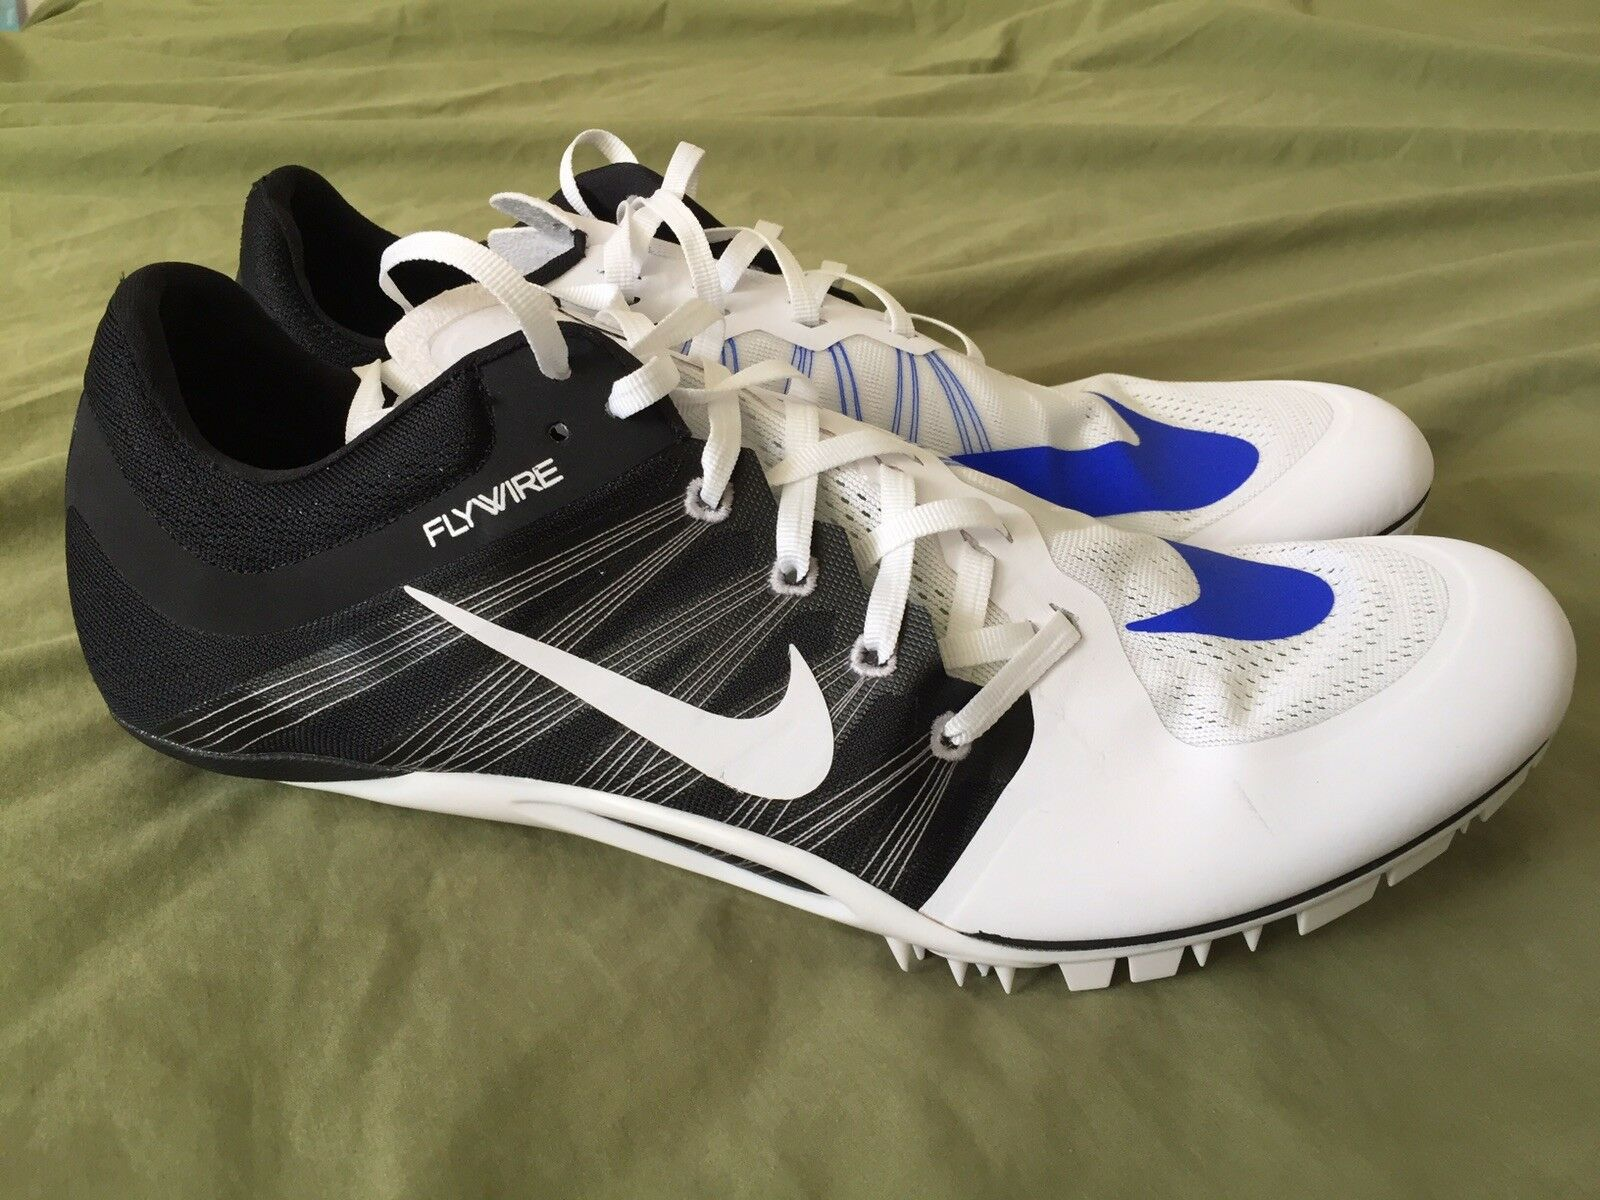 Nike JA FLY 2 Sprint Running Shoes 705373-100 White Blue MEN 15 BRAND NEW